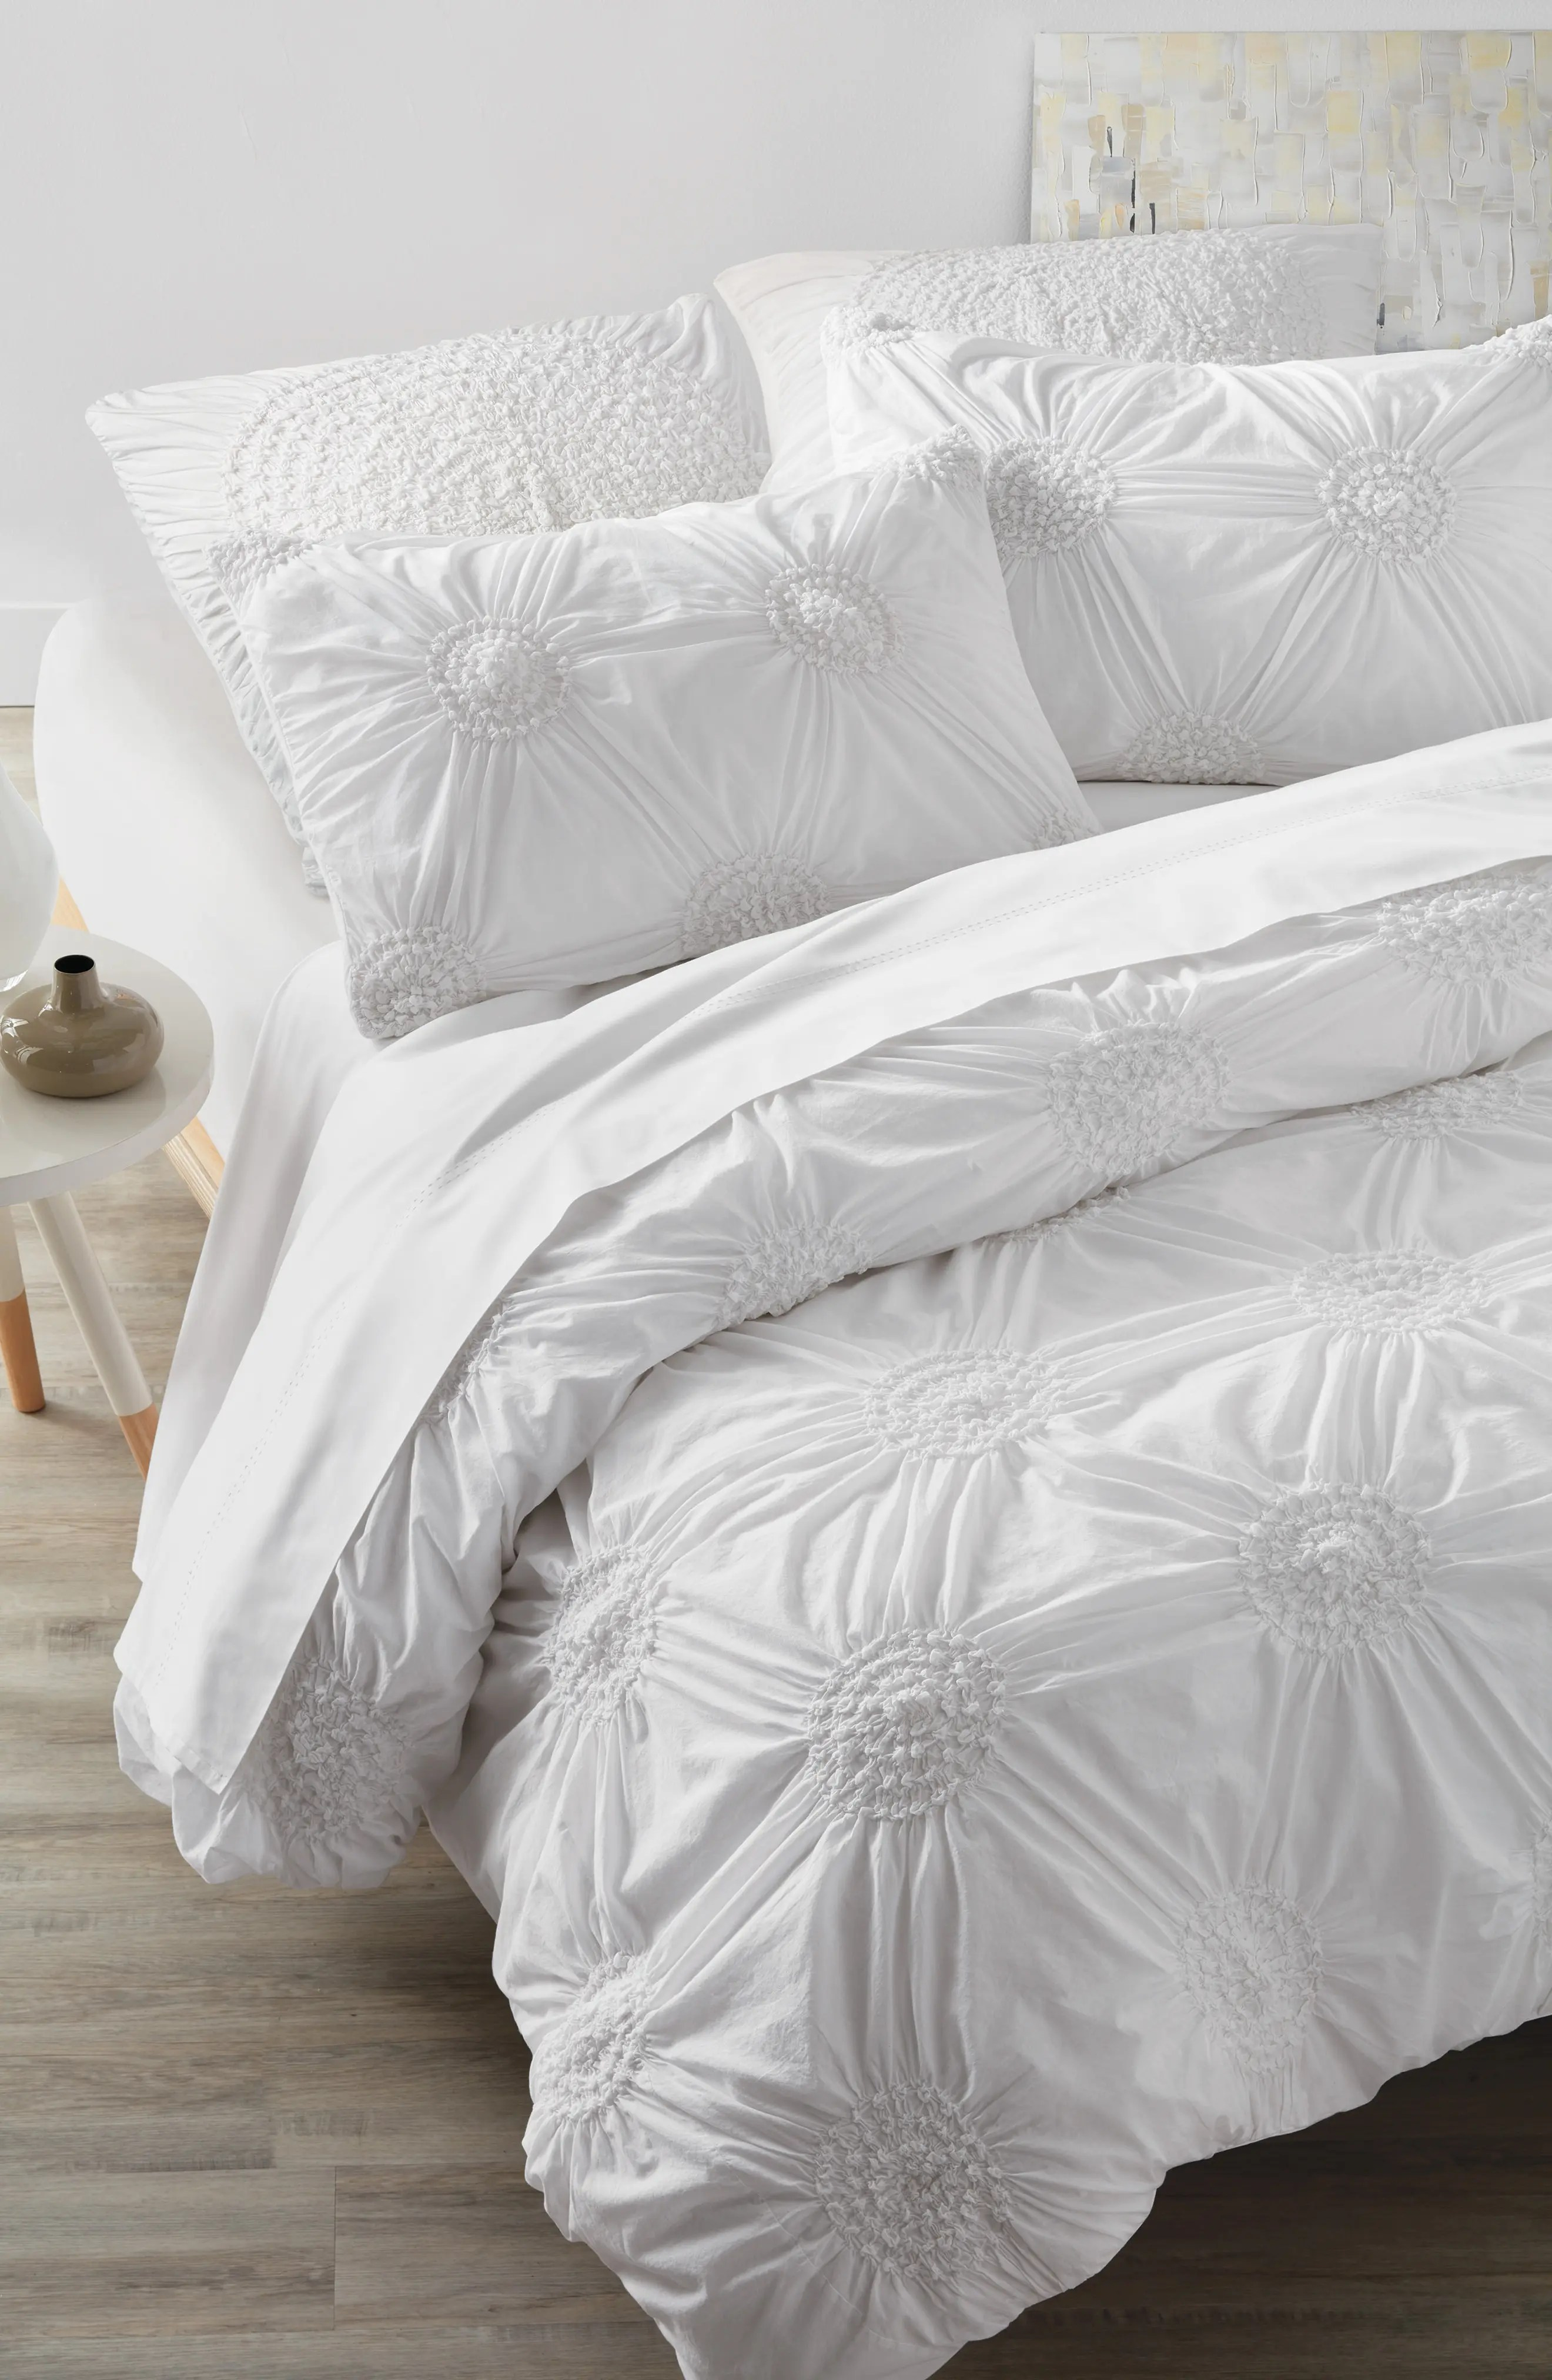 Modern Duvet Duvet Covers Pillow Shams Nordstrom